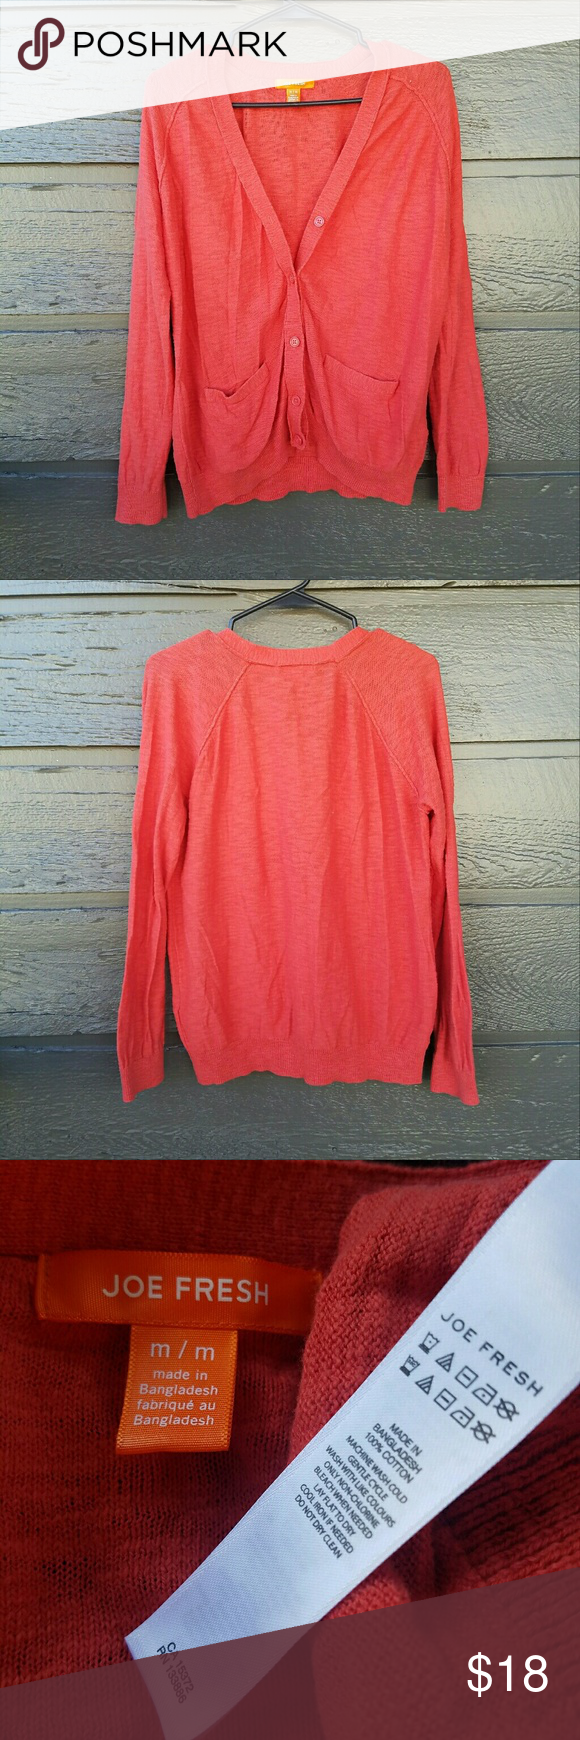 Joe Fresh Red Orange Cardigan Everyone needs a bringgt cardigan in ...